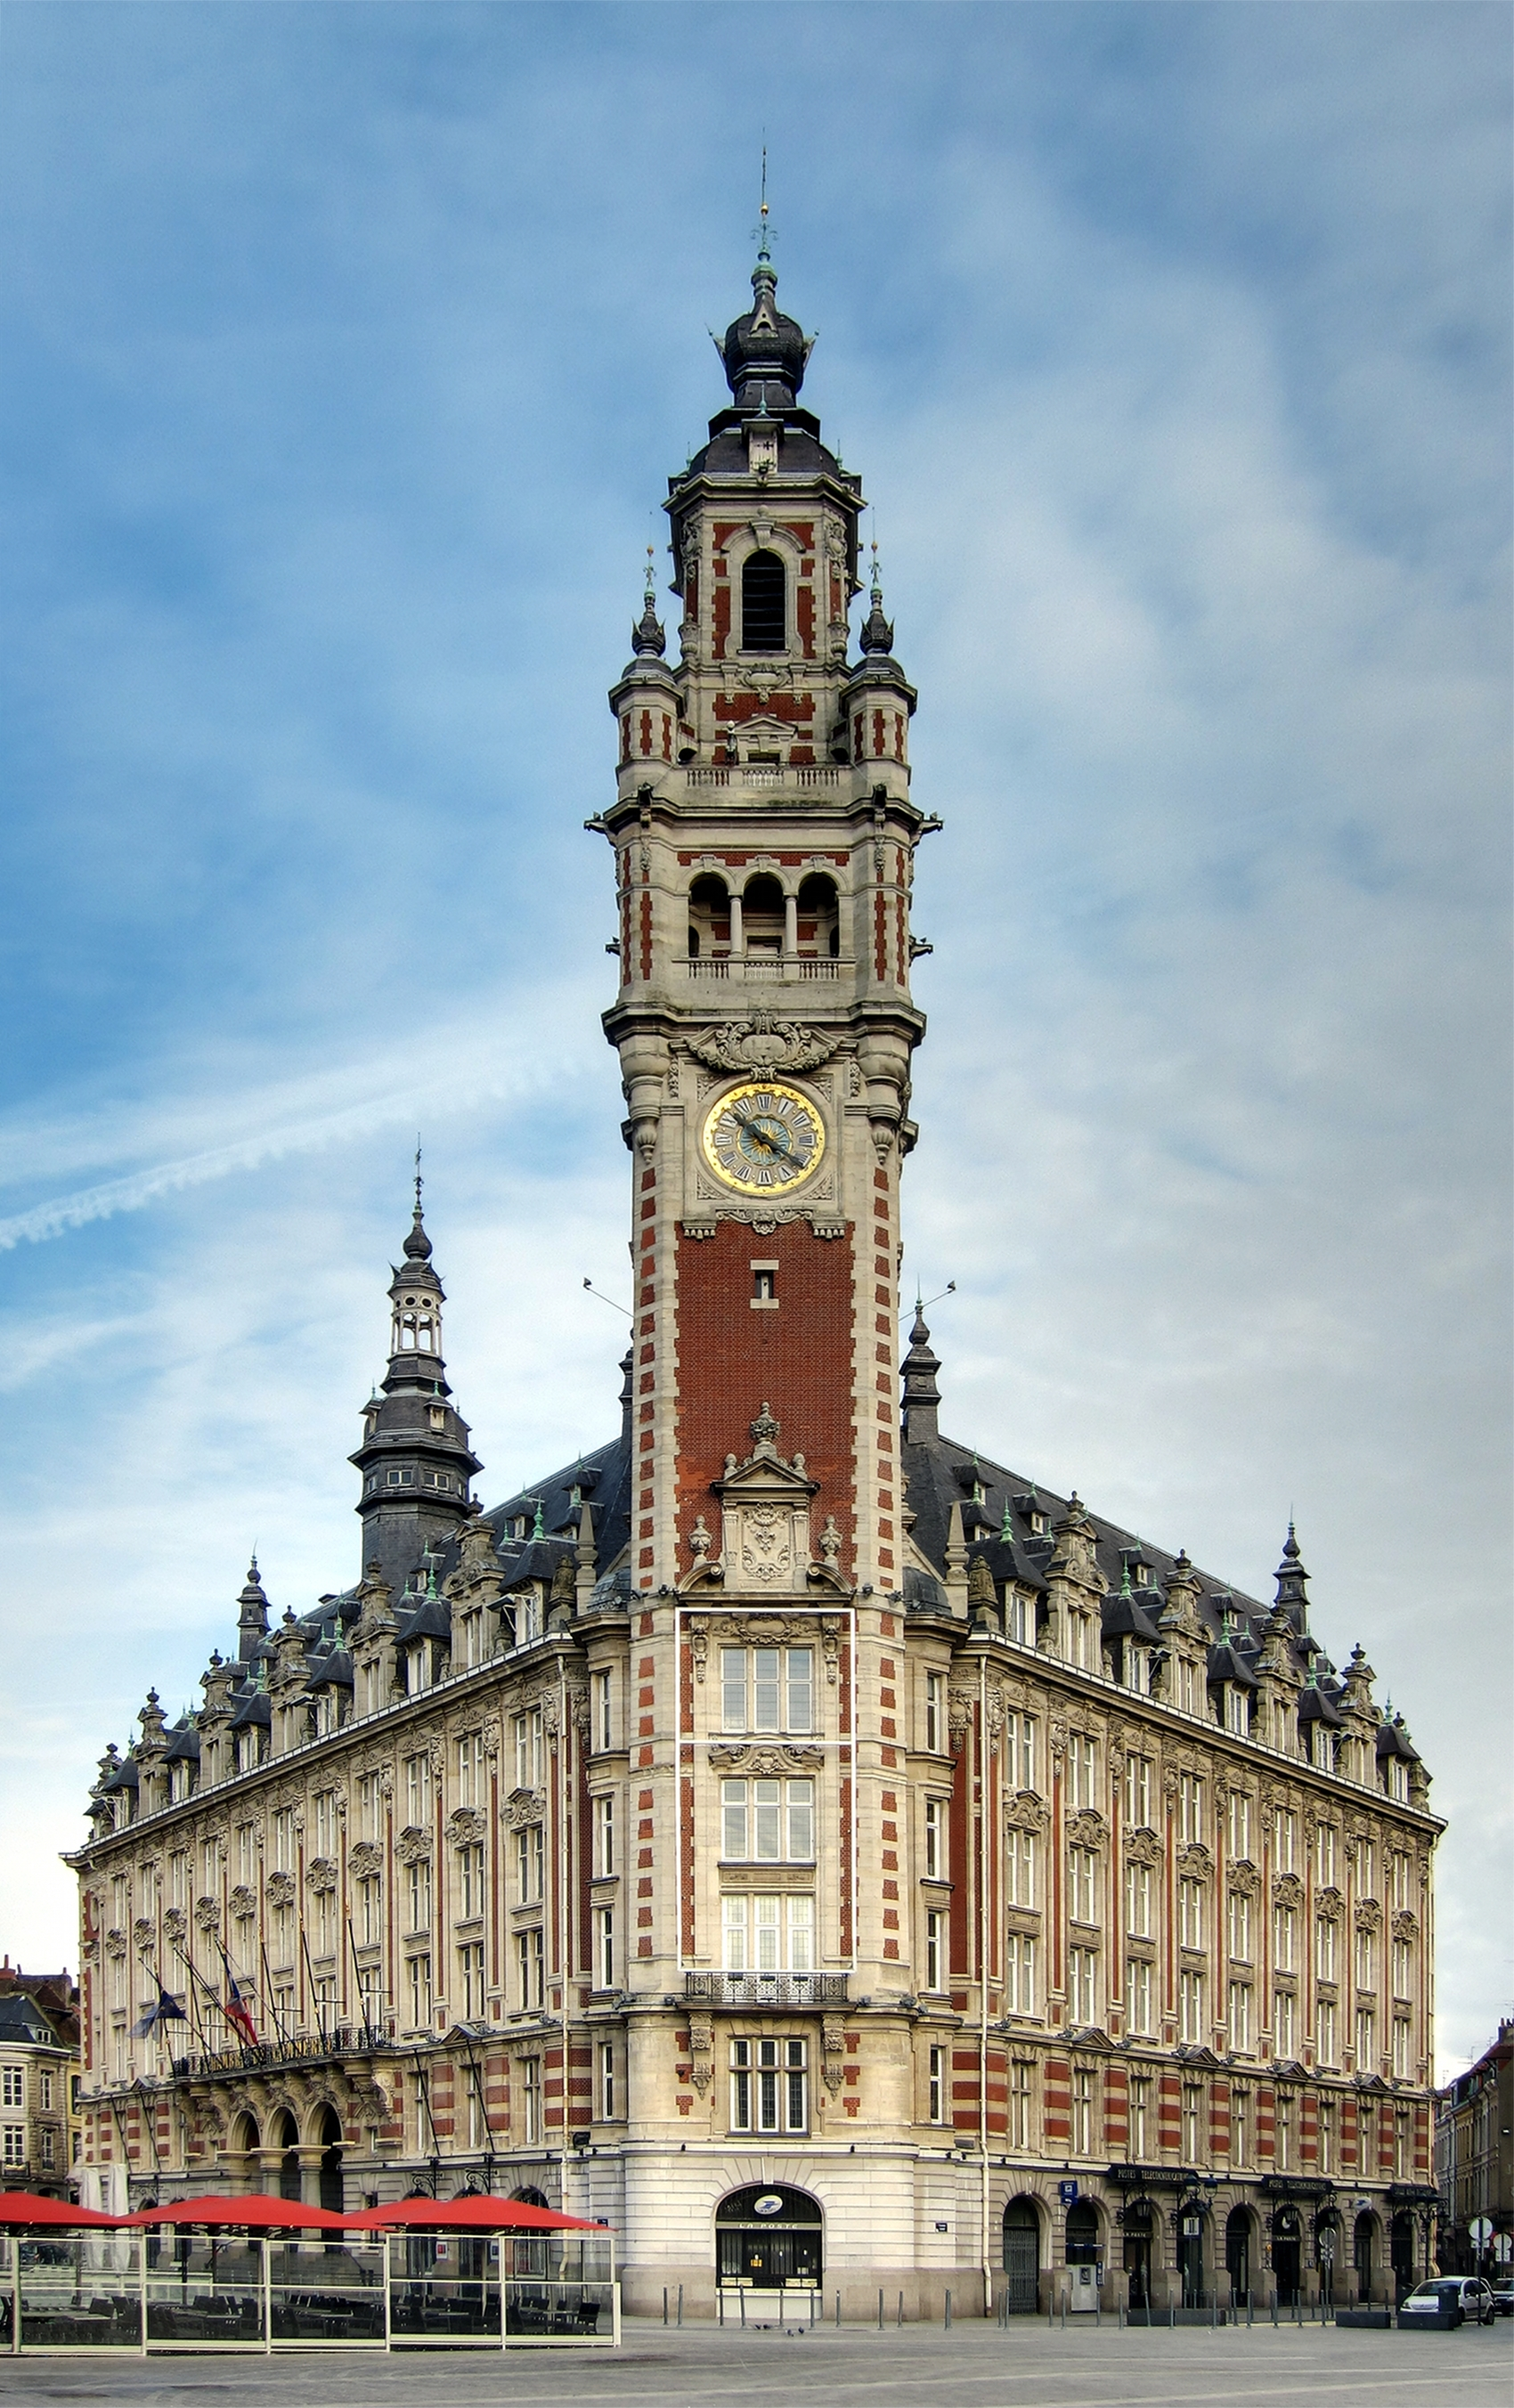 File:Lille CCI 2.jpg - Wikimedia Commons